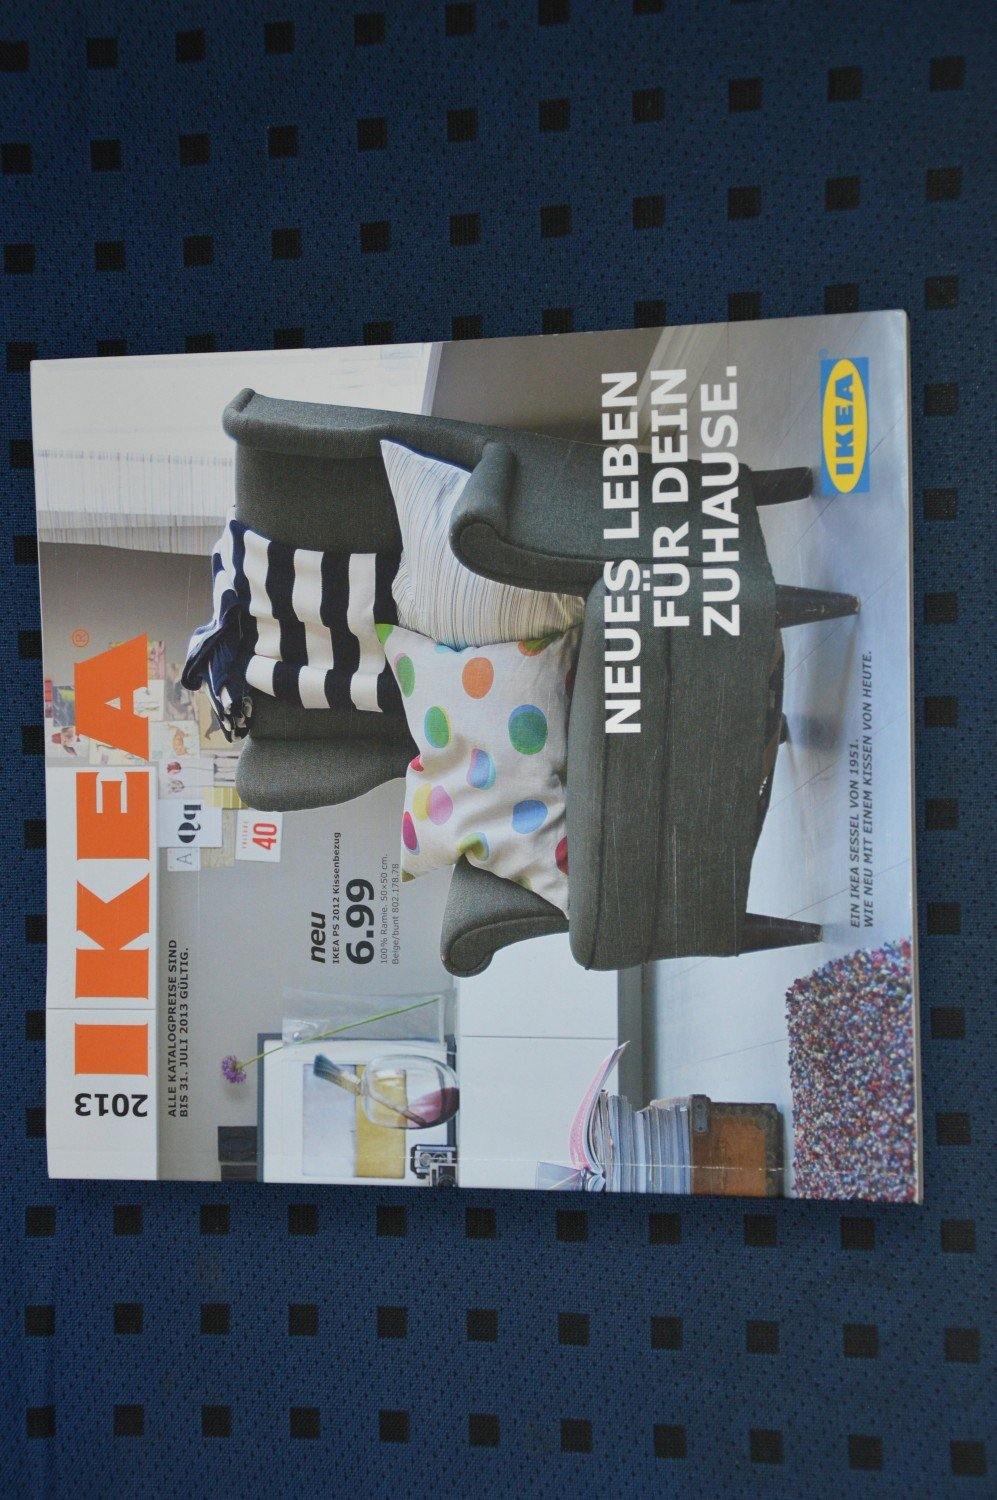 ikea katalog 2013 buch gebraucht kaufen a029oaa101zzn. Black Bedroom Furniture Sets. Home Design Ideas